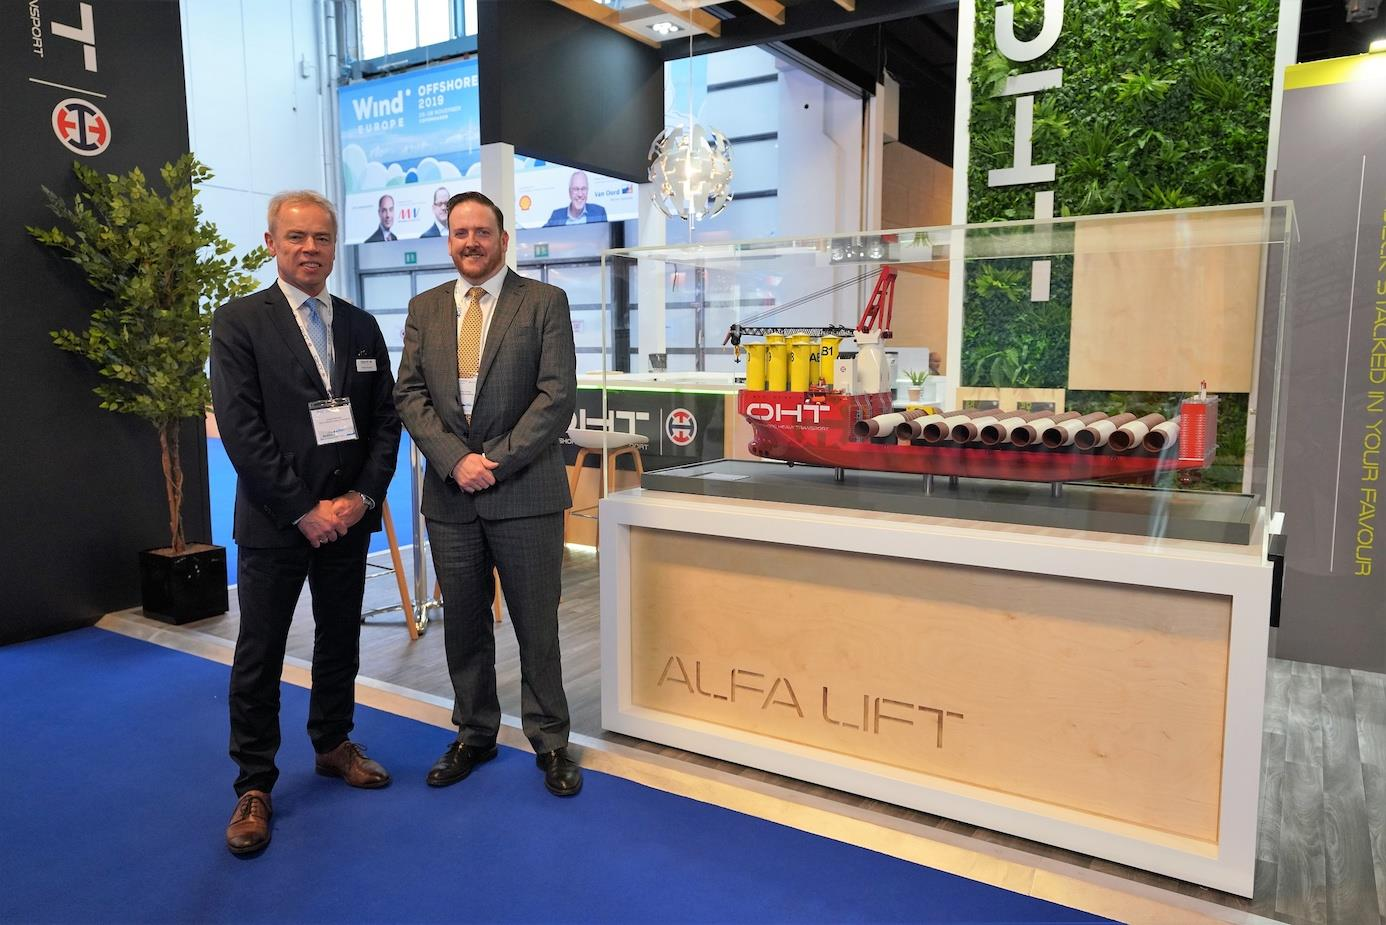 Paul Cooley, SSE Renewables director of capital projects together with Torgeir Ramstad, ceo of OHT.